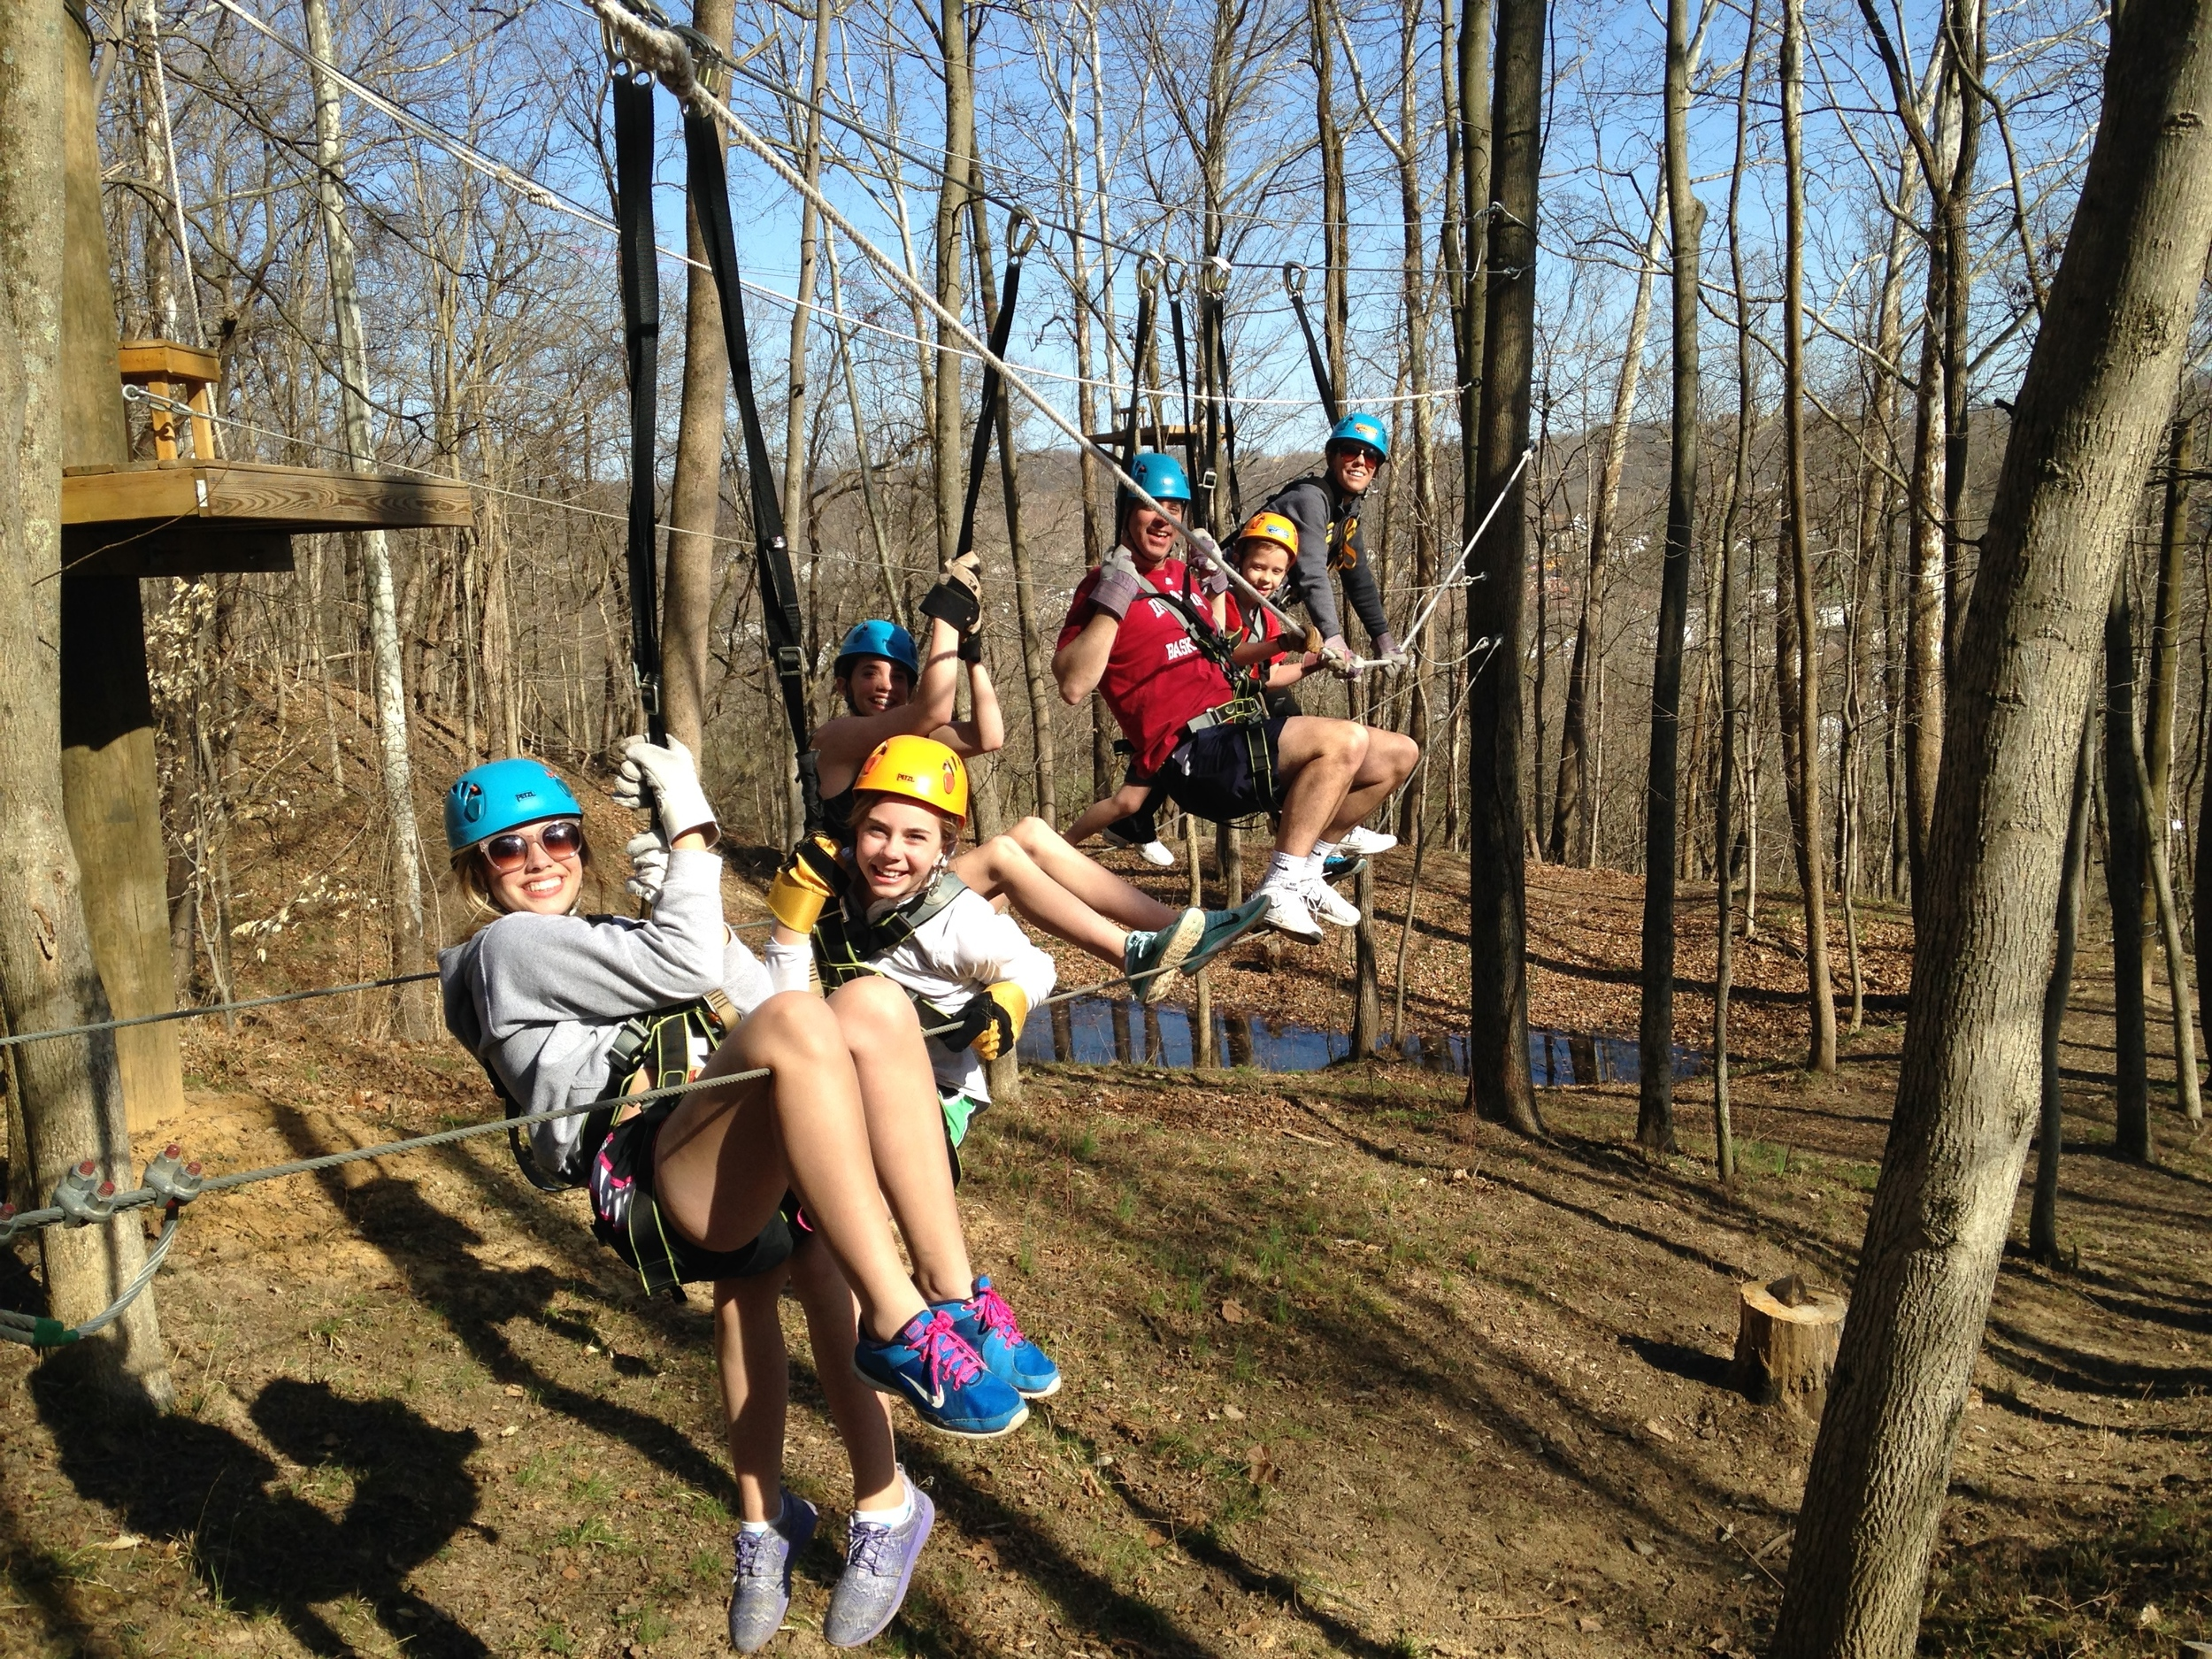 Group Zip lining in Indiana